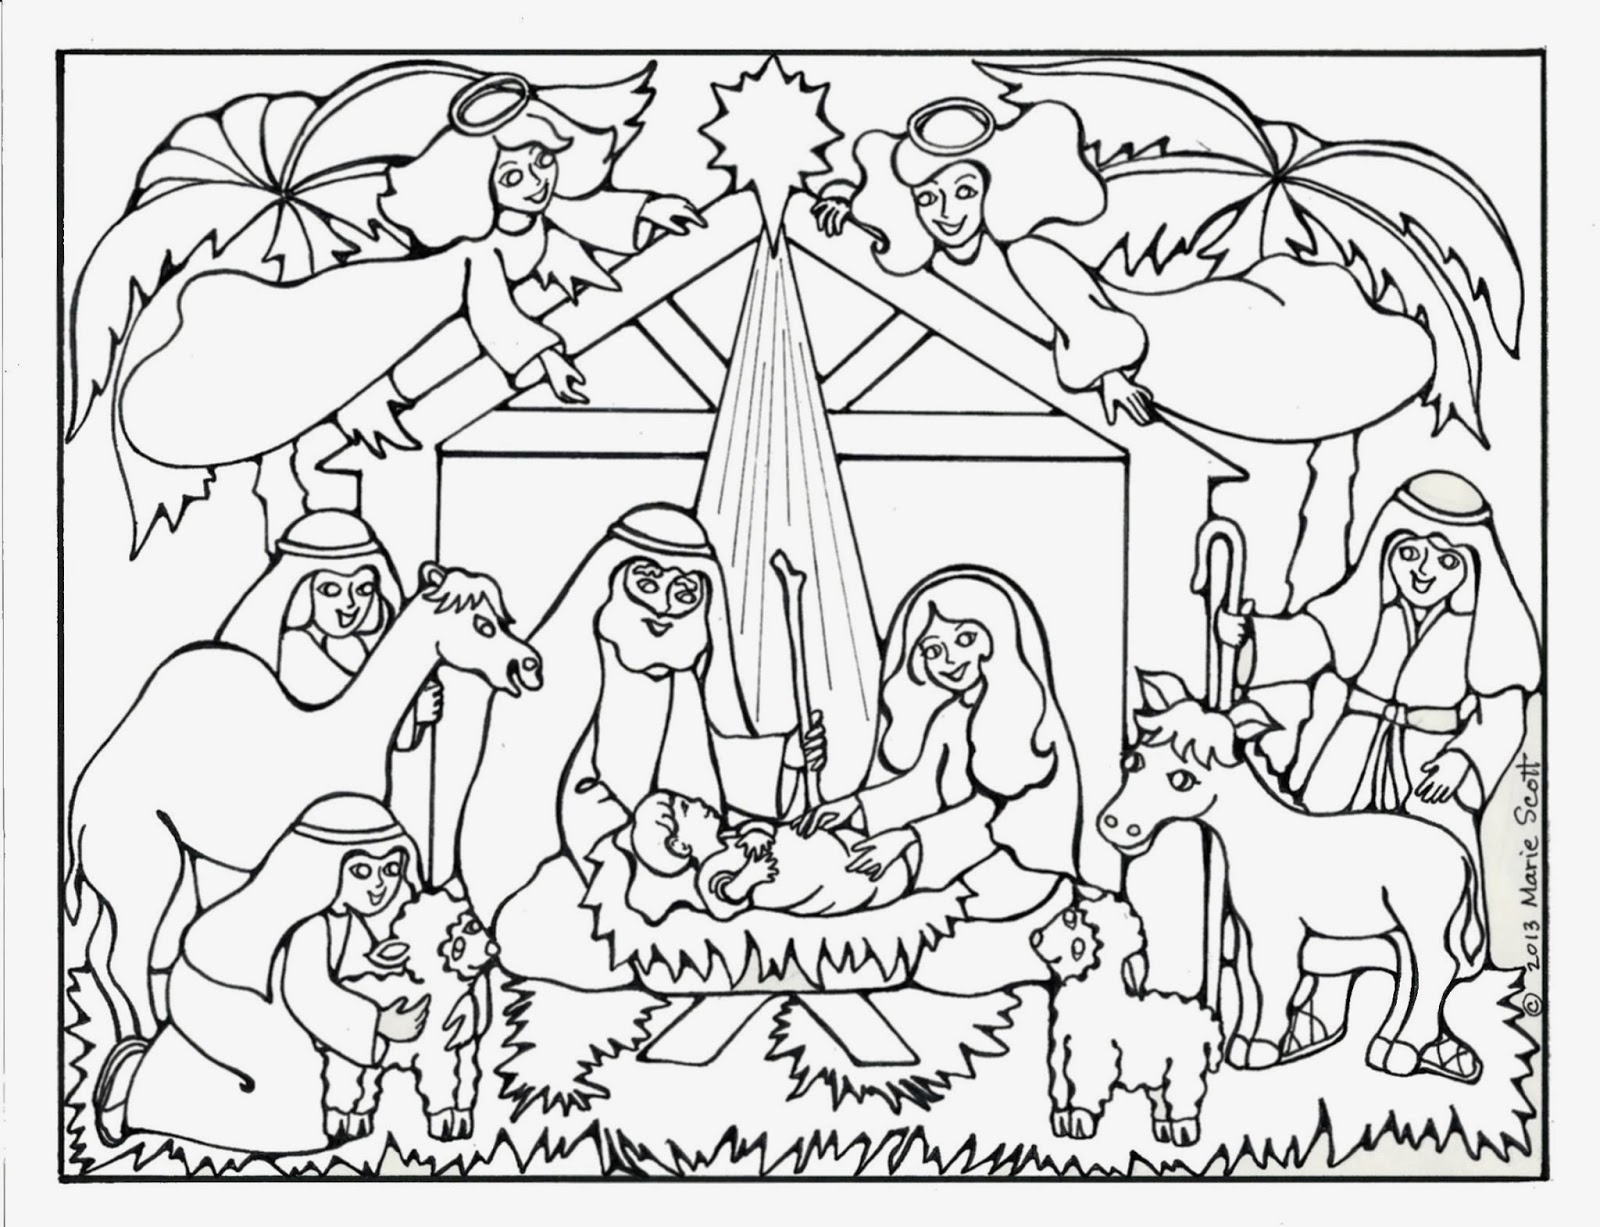 Jesus Christmas Coloring Pages Coloring Pages Christmas Nativity Coloring Pages For Adults To